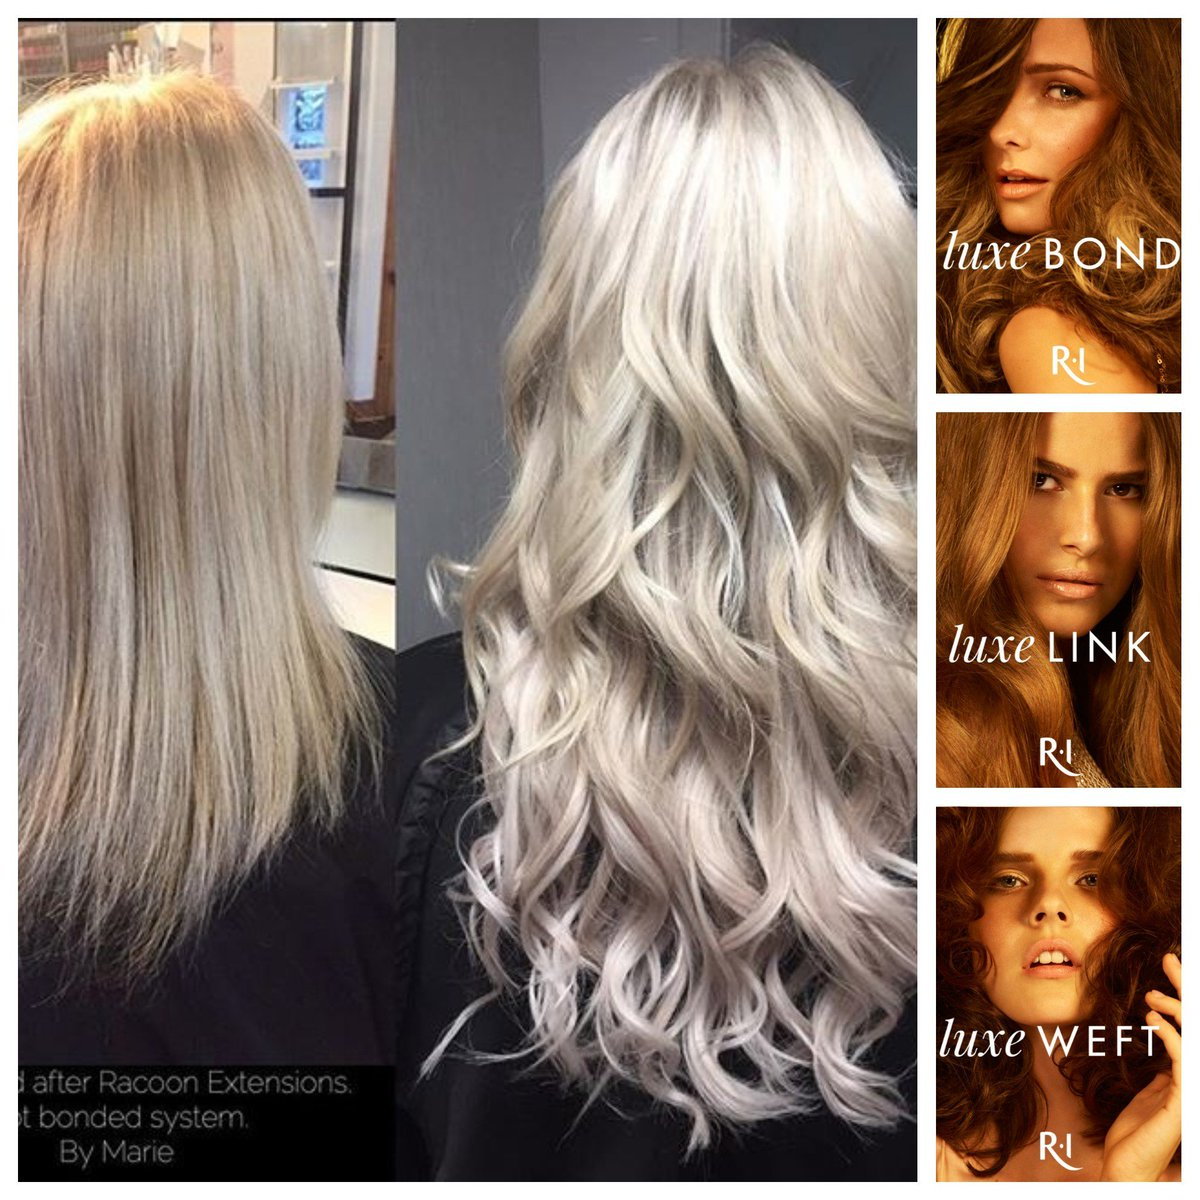 Racoon extensions uk